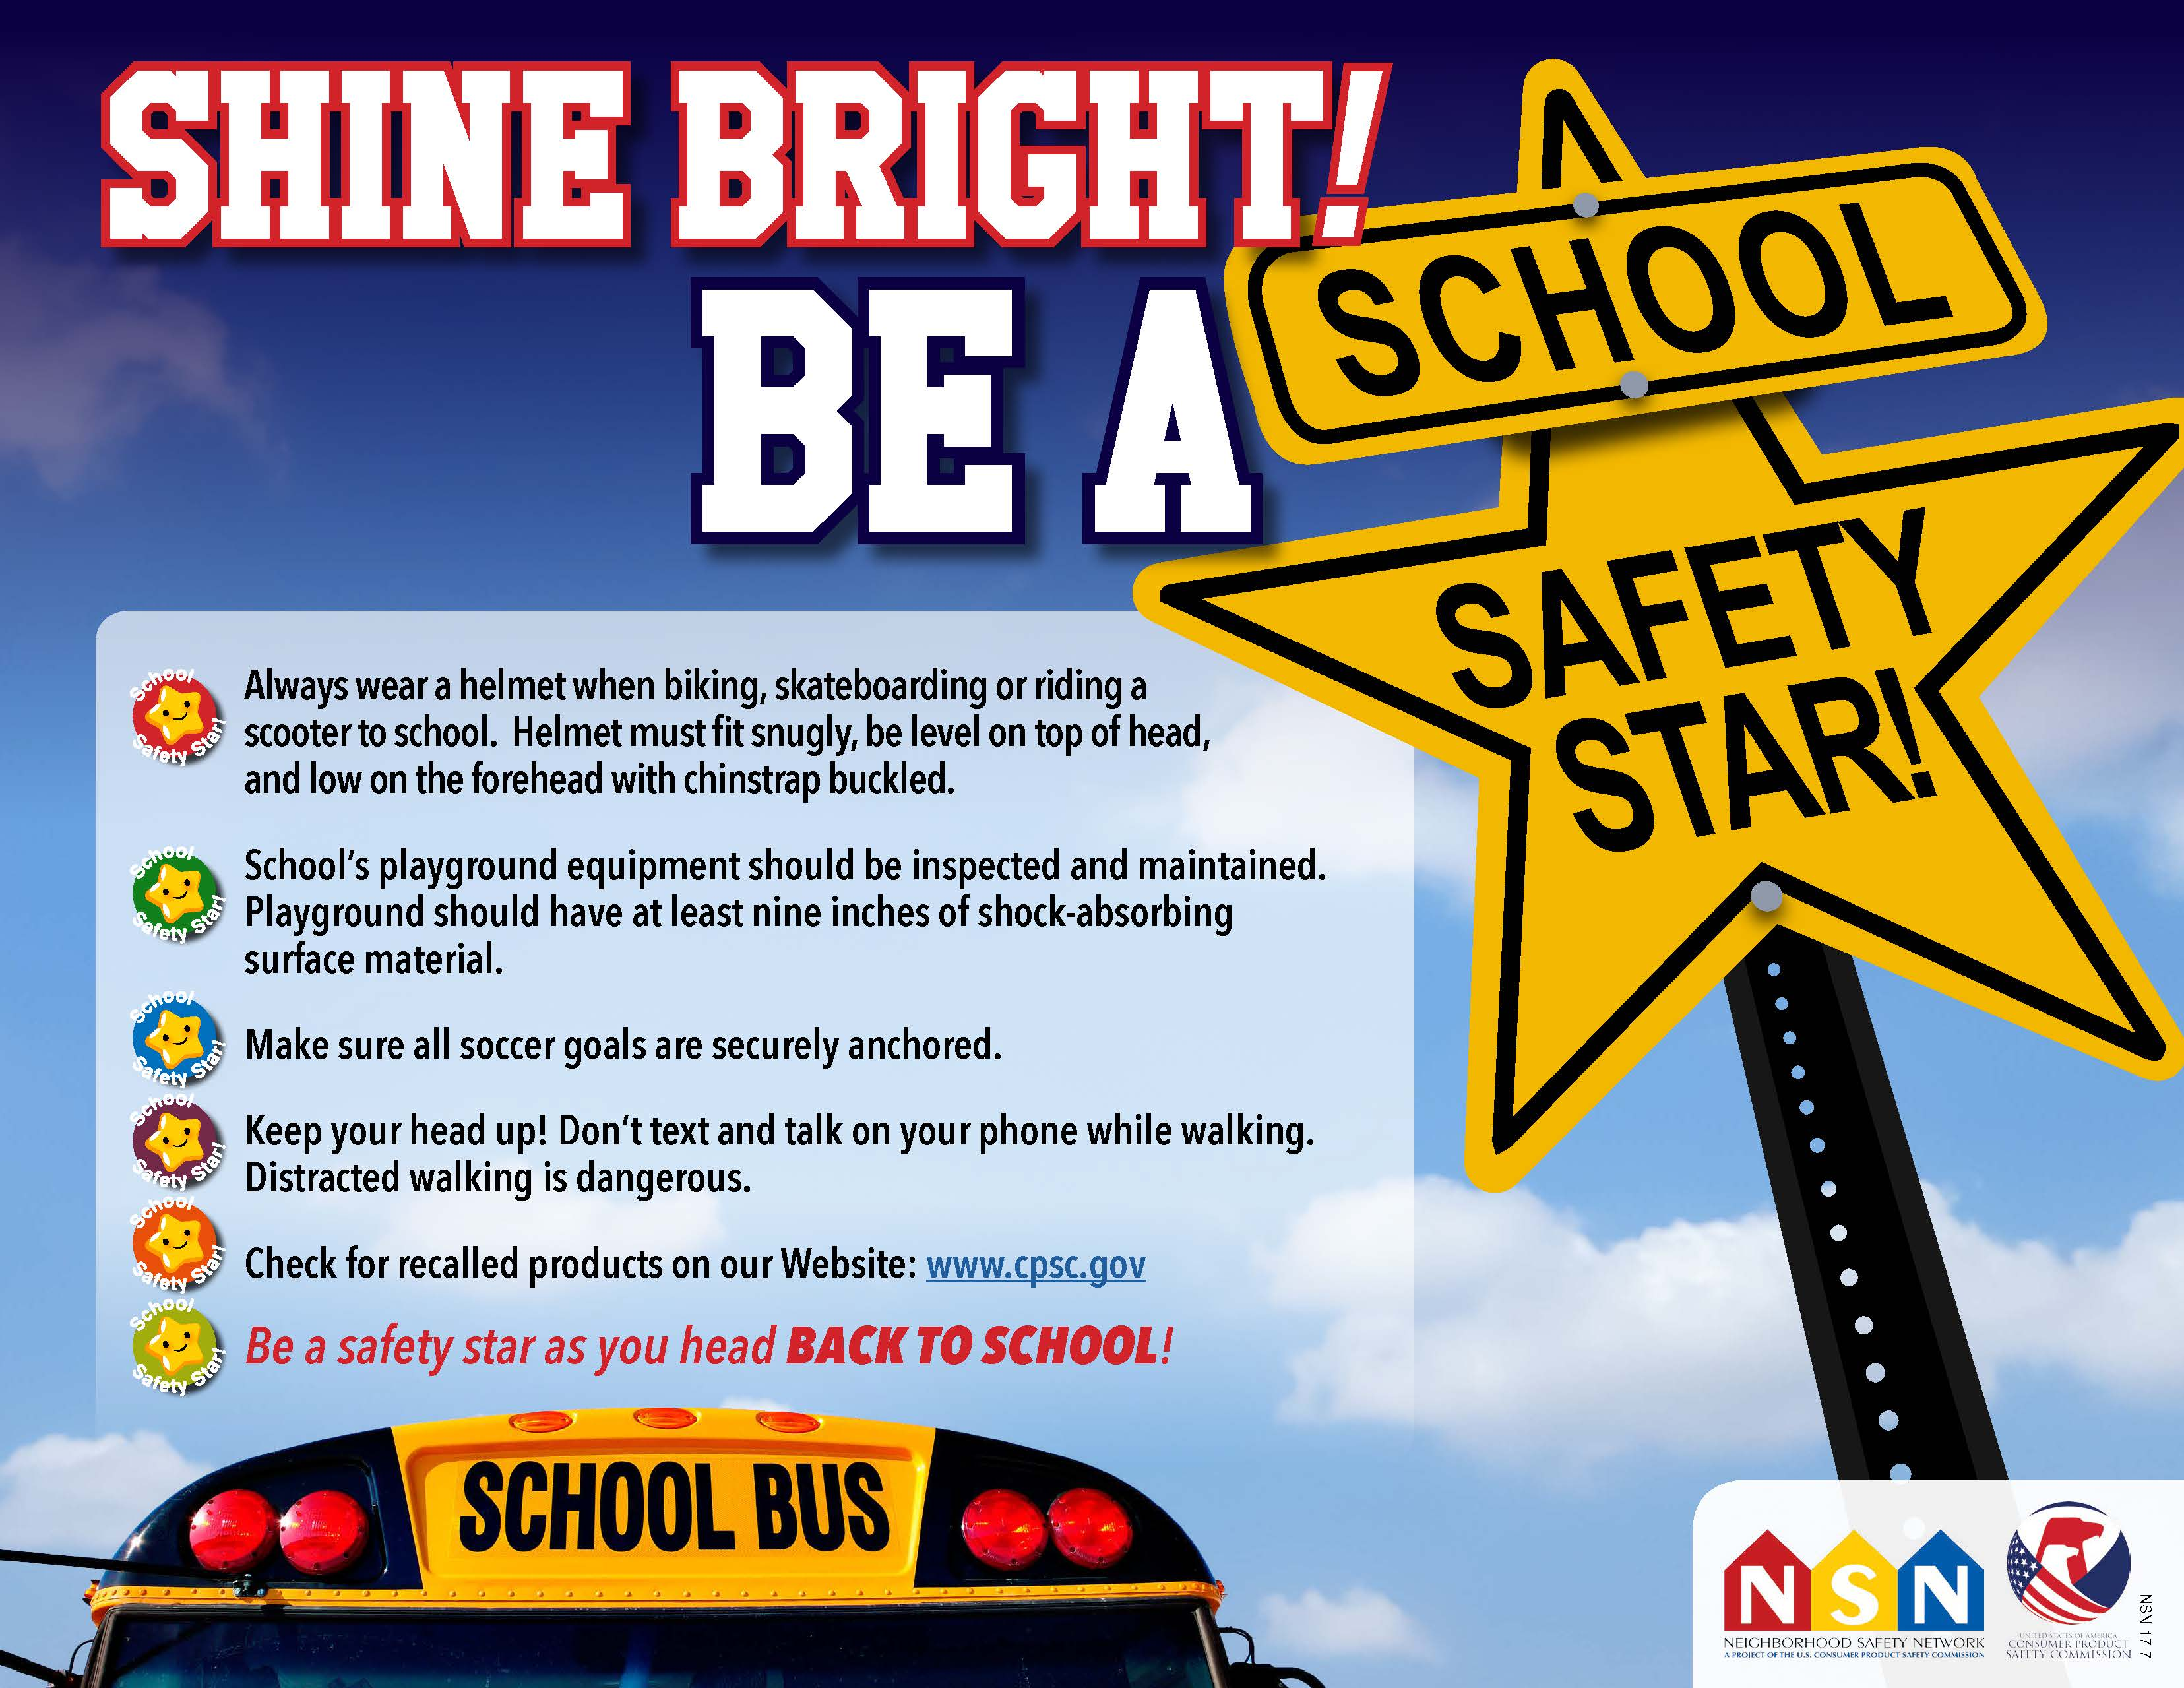 Onsafety Shine Bright Be A School Safety Star